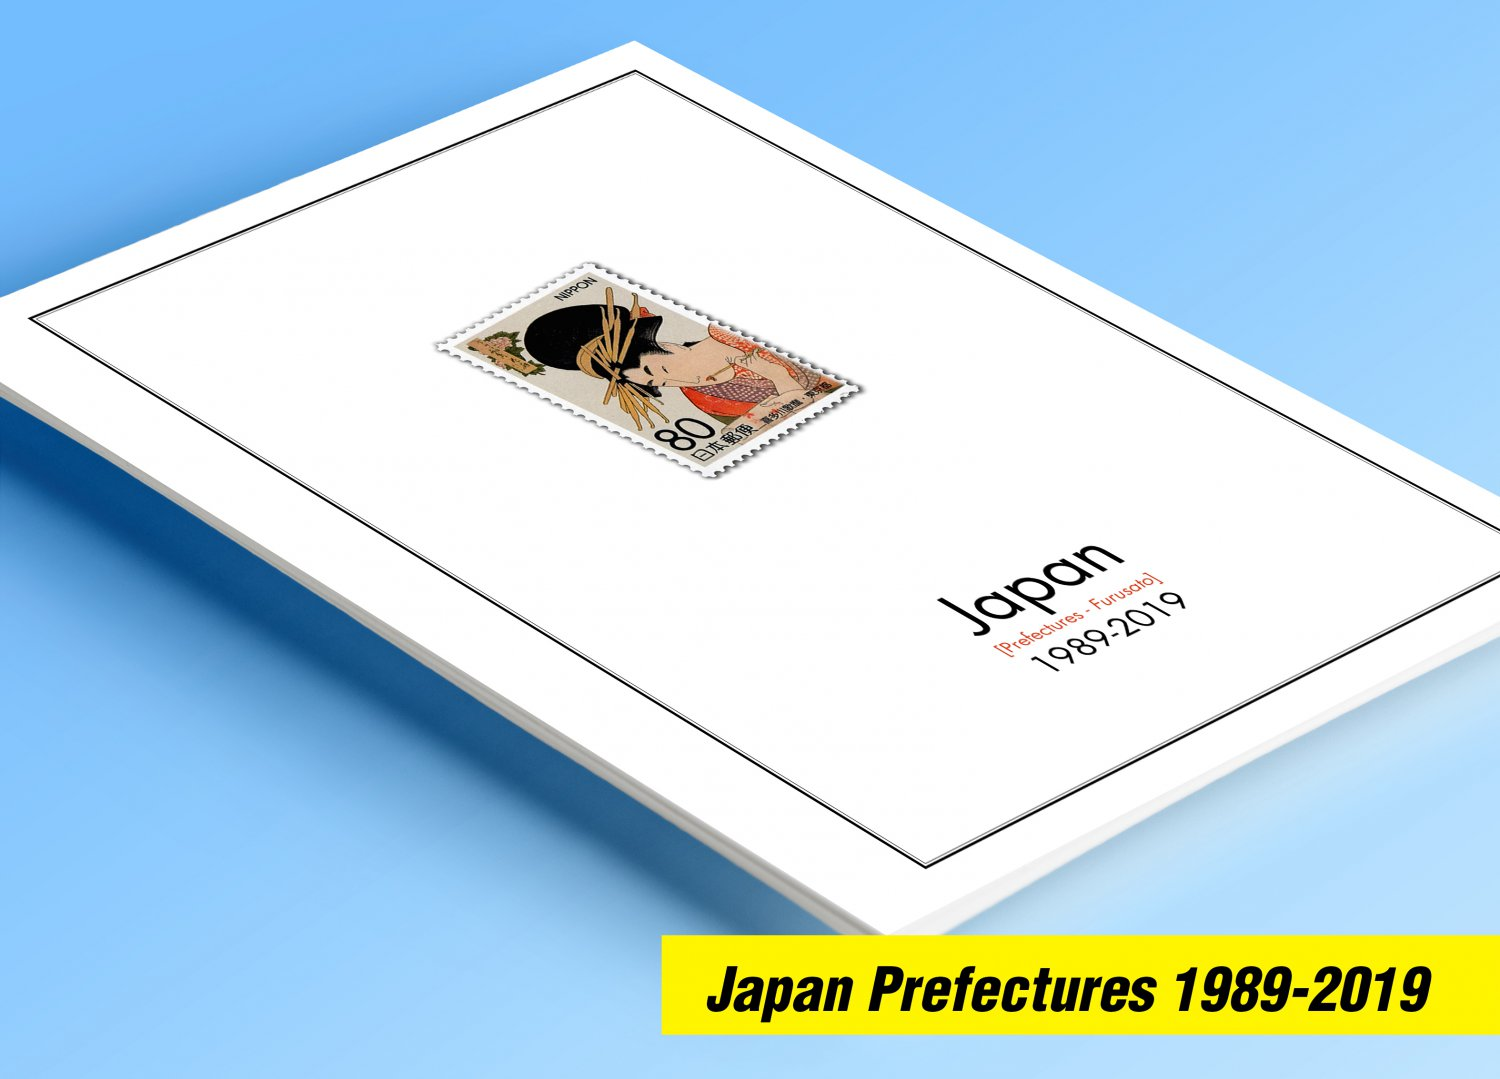 COLOR PRINTED JAPAN PREFECTURES [FURUSATO] 1989-2019 STAMP ALBUM PAGES (202 illustrated pages)